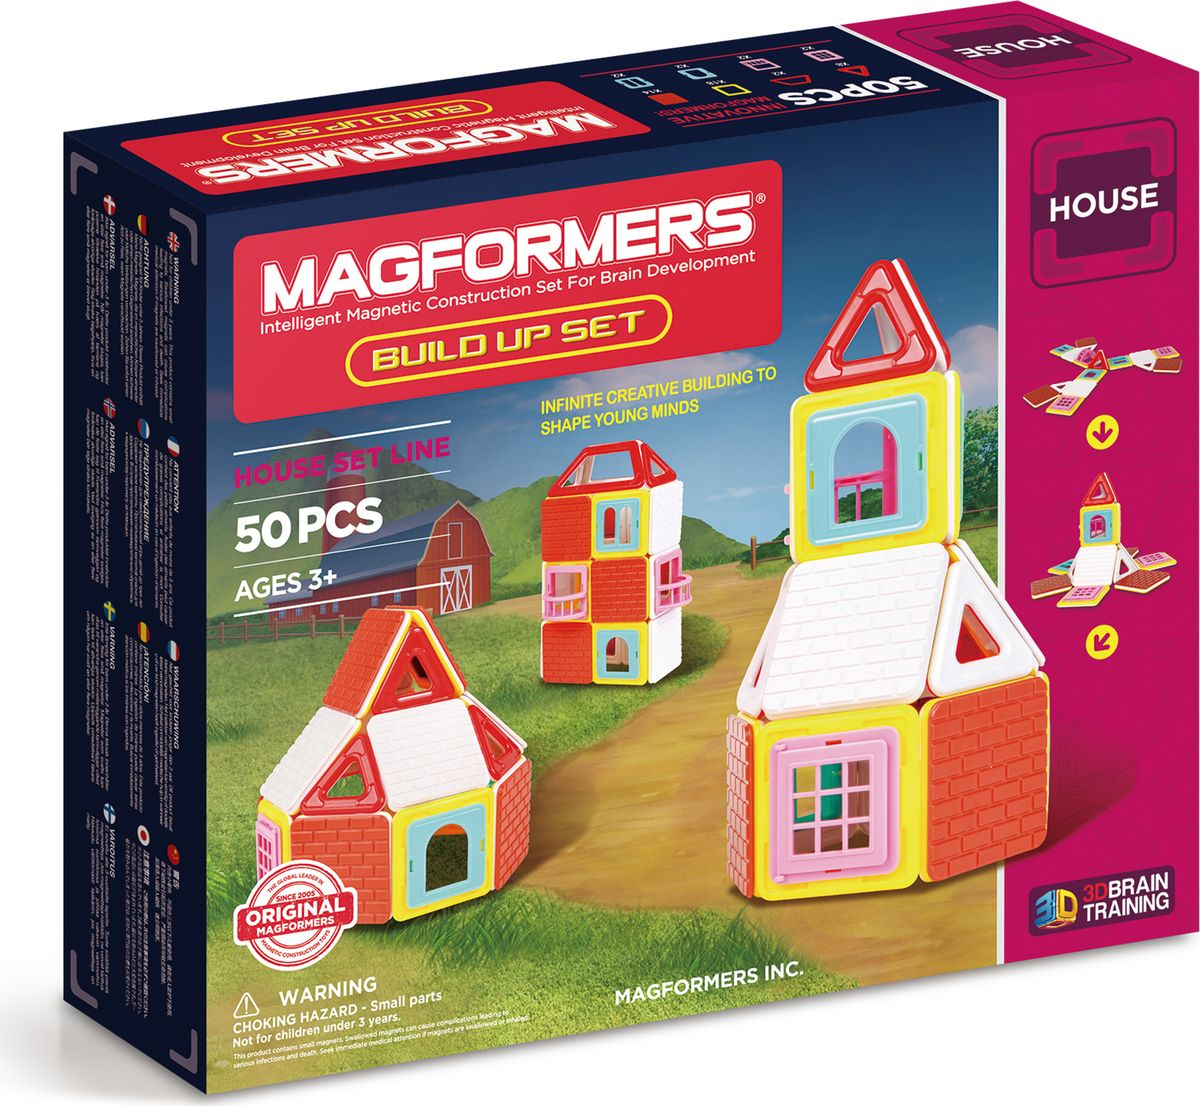 Magformers Магнитный конструктор Build Up Set magformers r c cruiser set 707003 63091